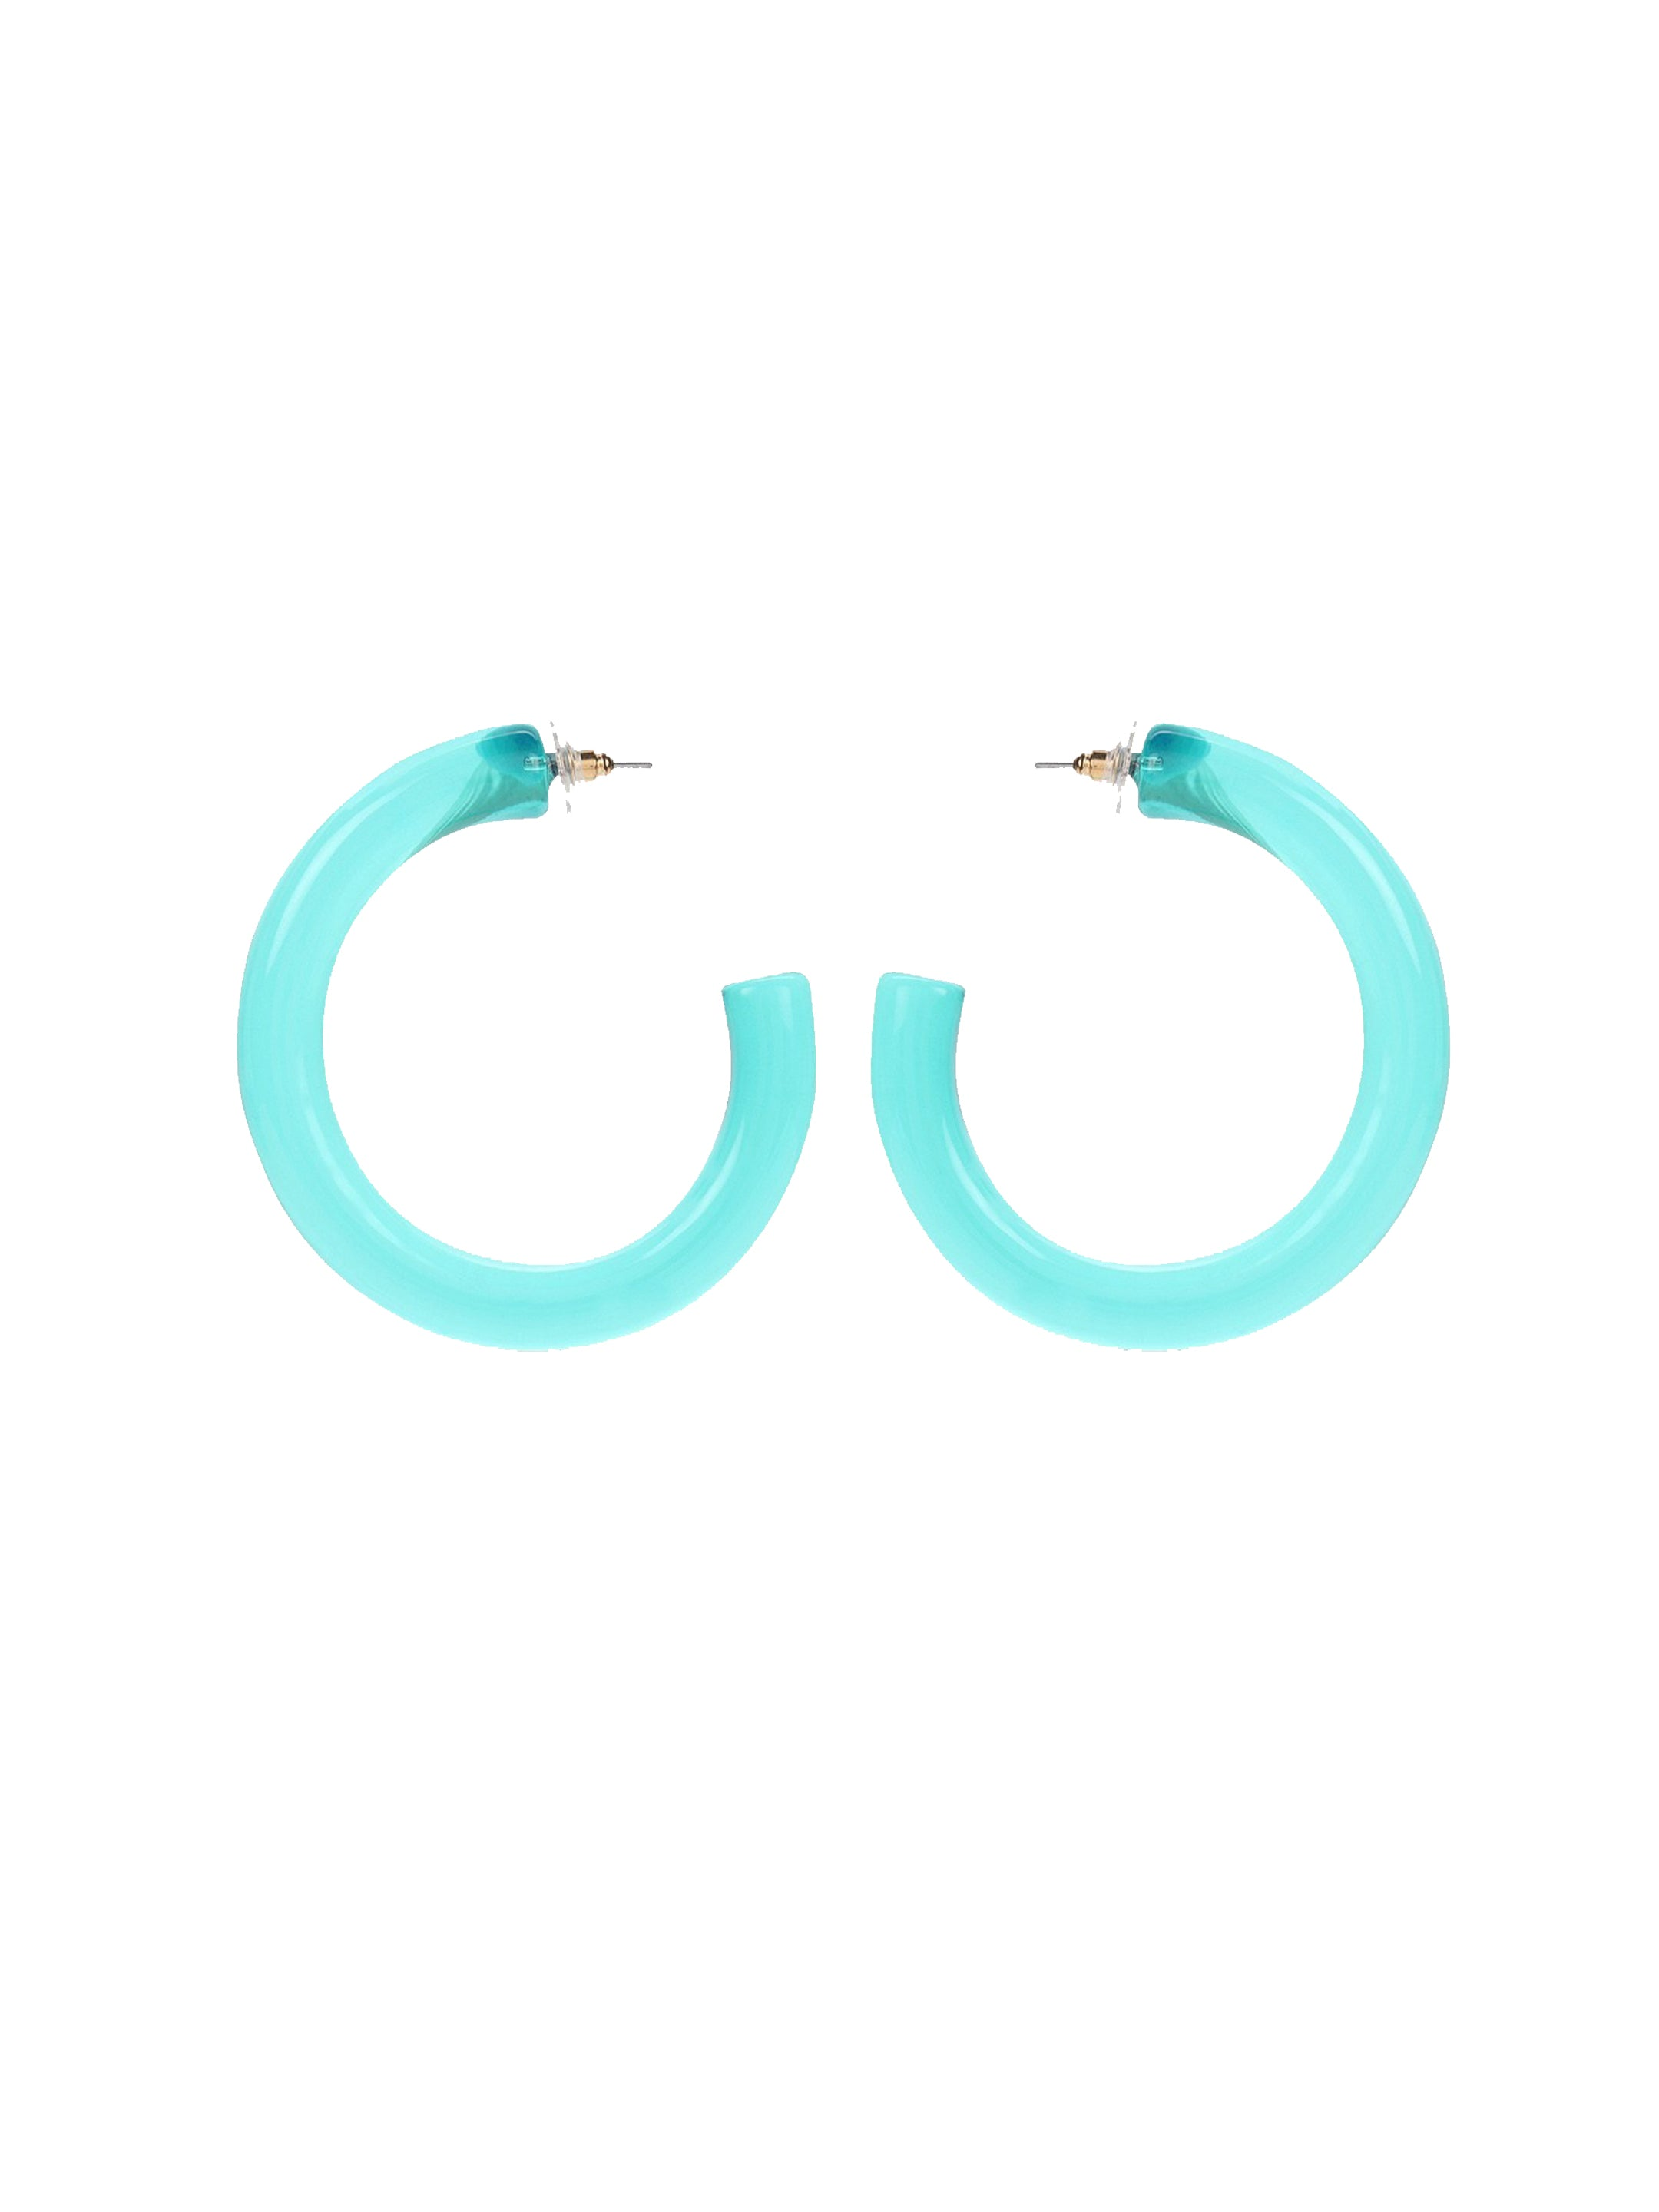 Aqua Blue Hoop Earrings-STYLE FIESTA-Earring